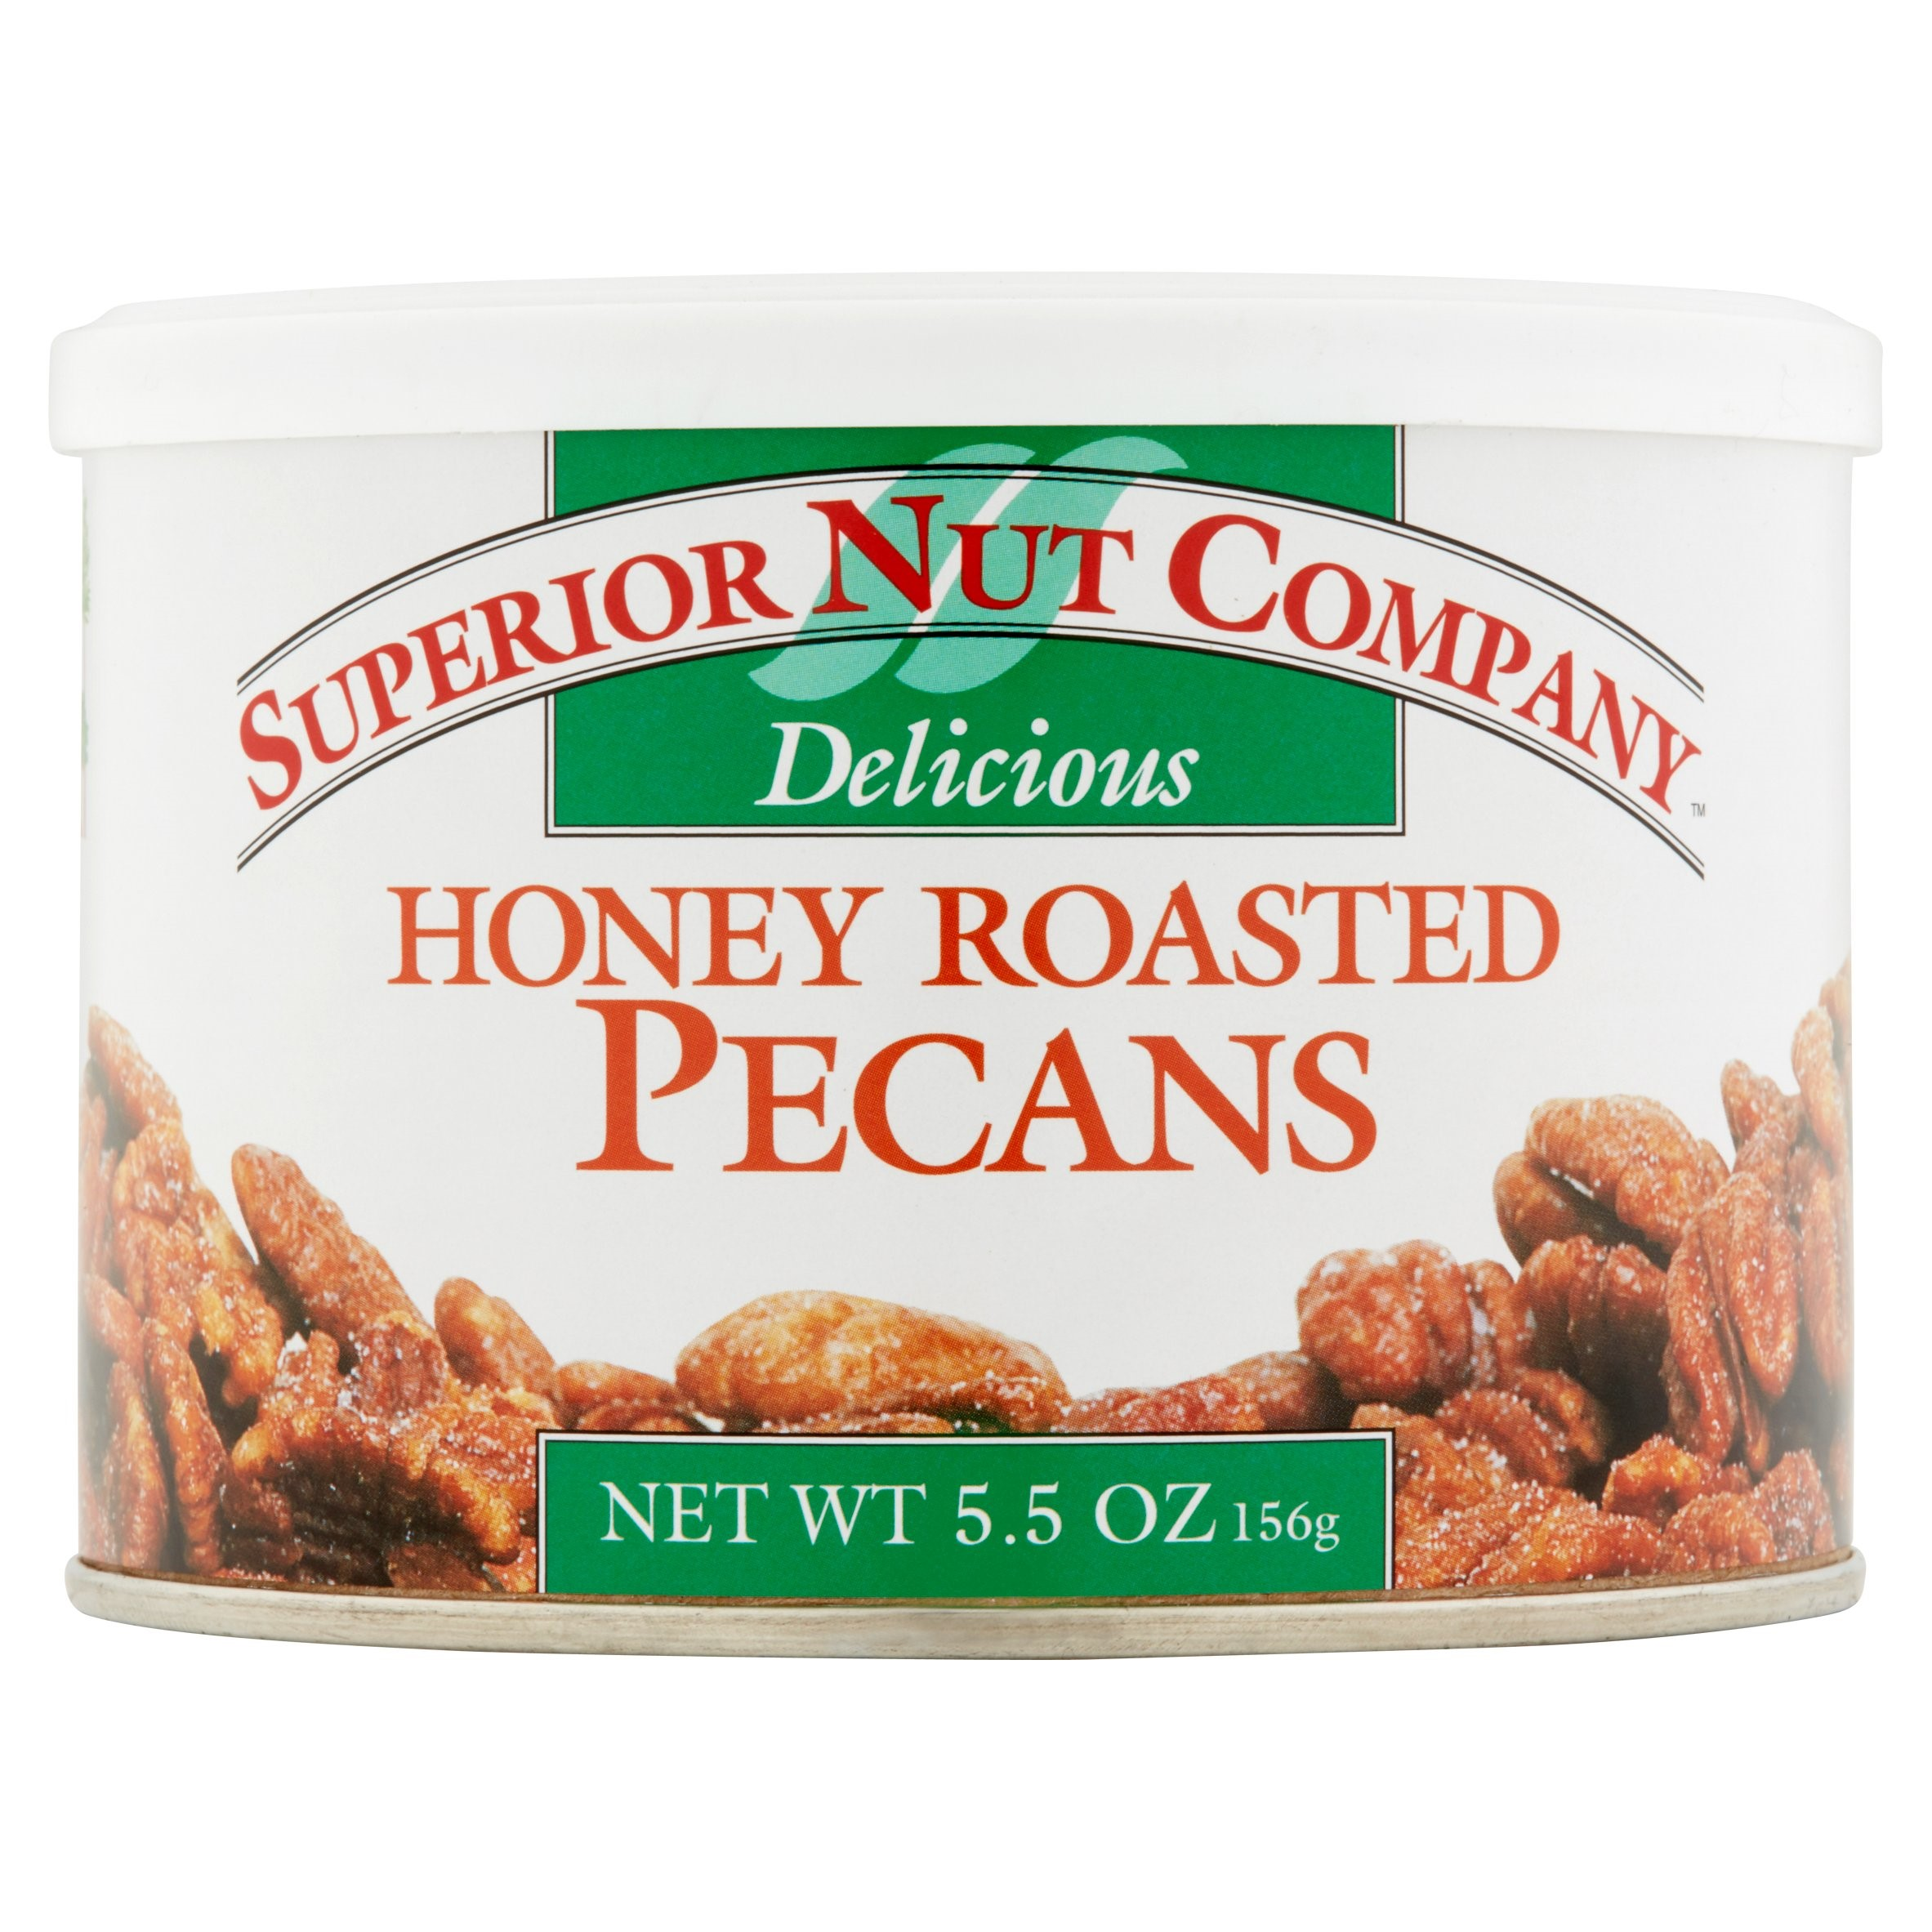 Superior Nut Company Honey Roasted Pecans, 5.5 oz